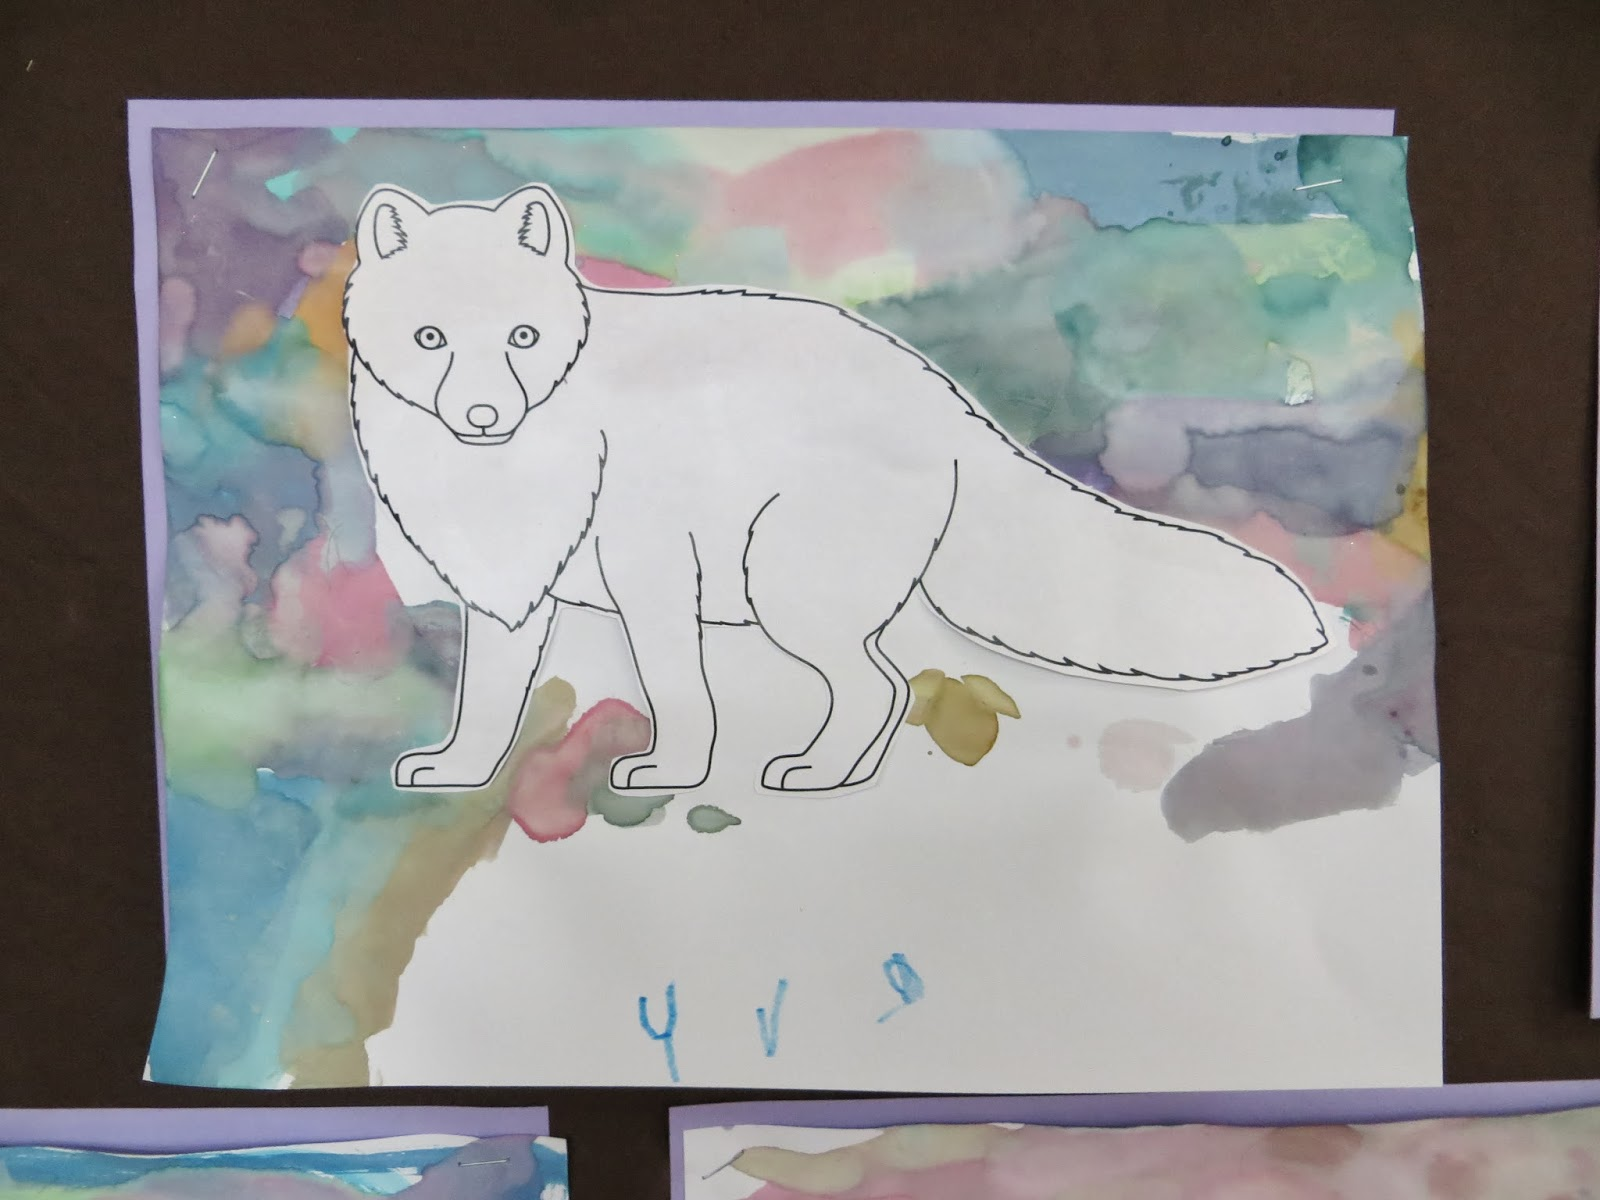 and others preferred pasting a white arctic fox on their painting